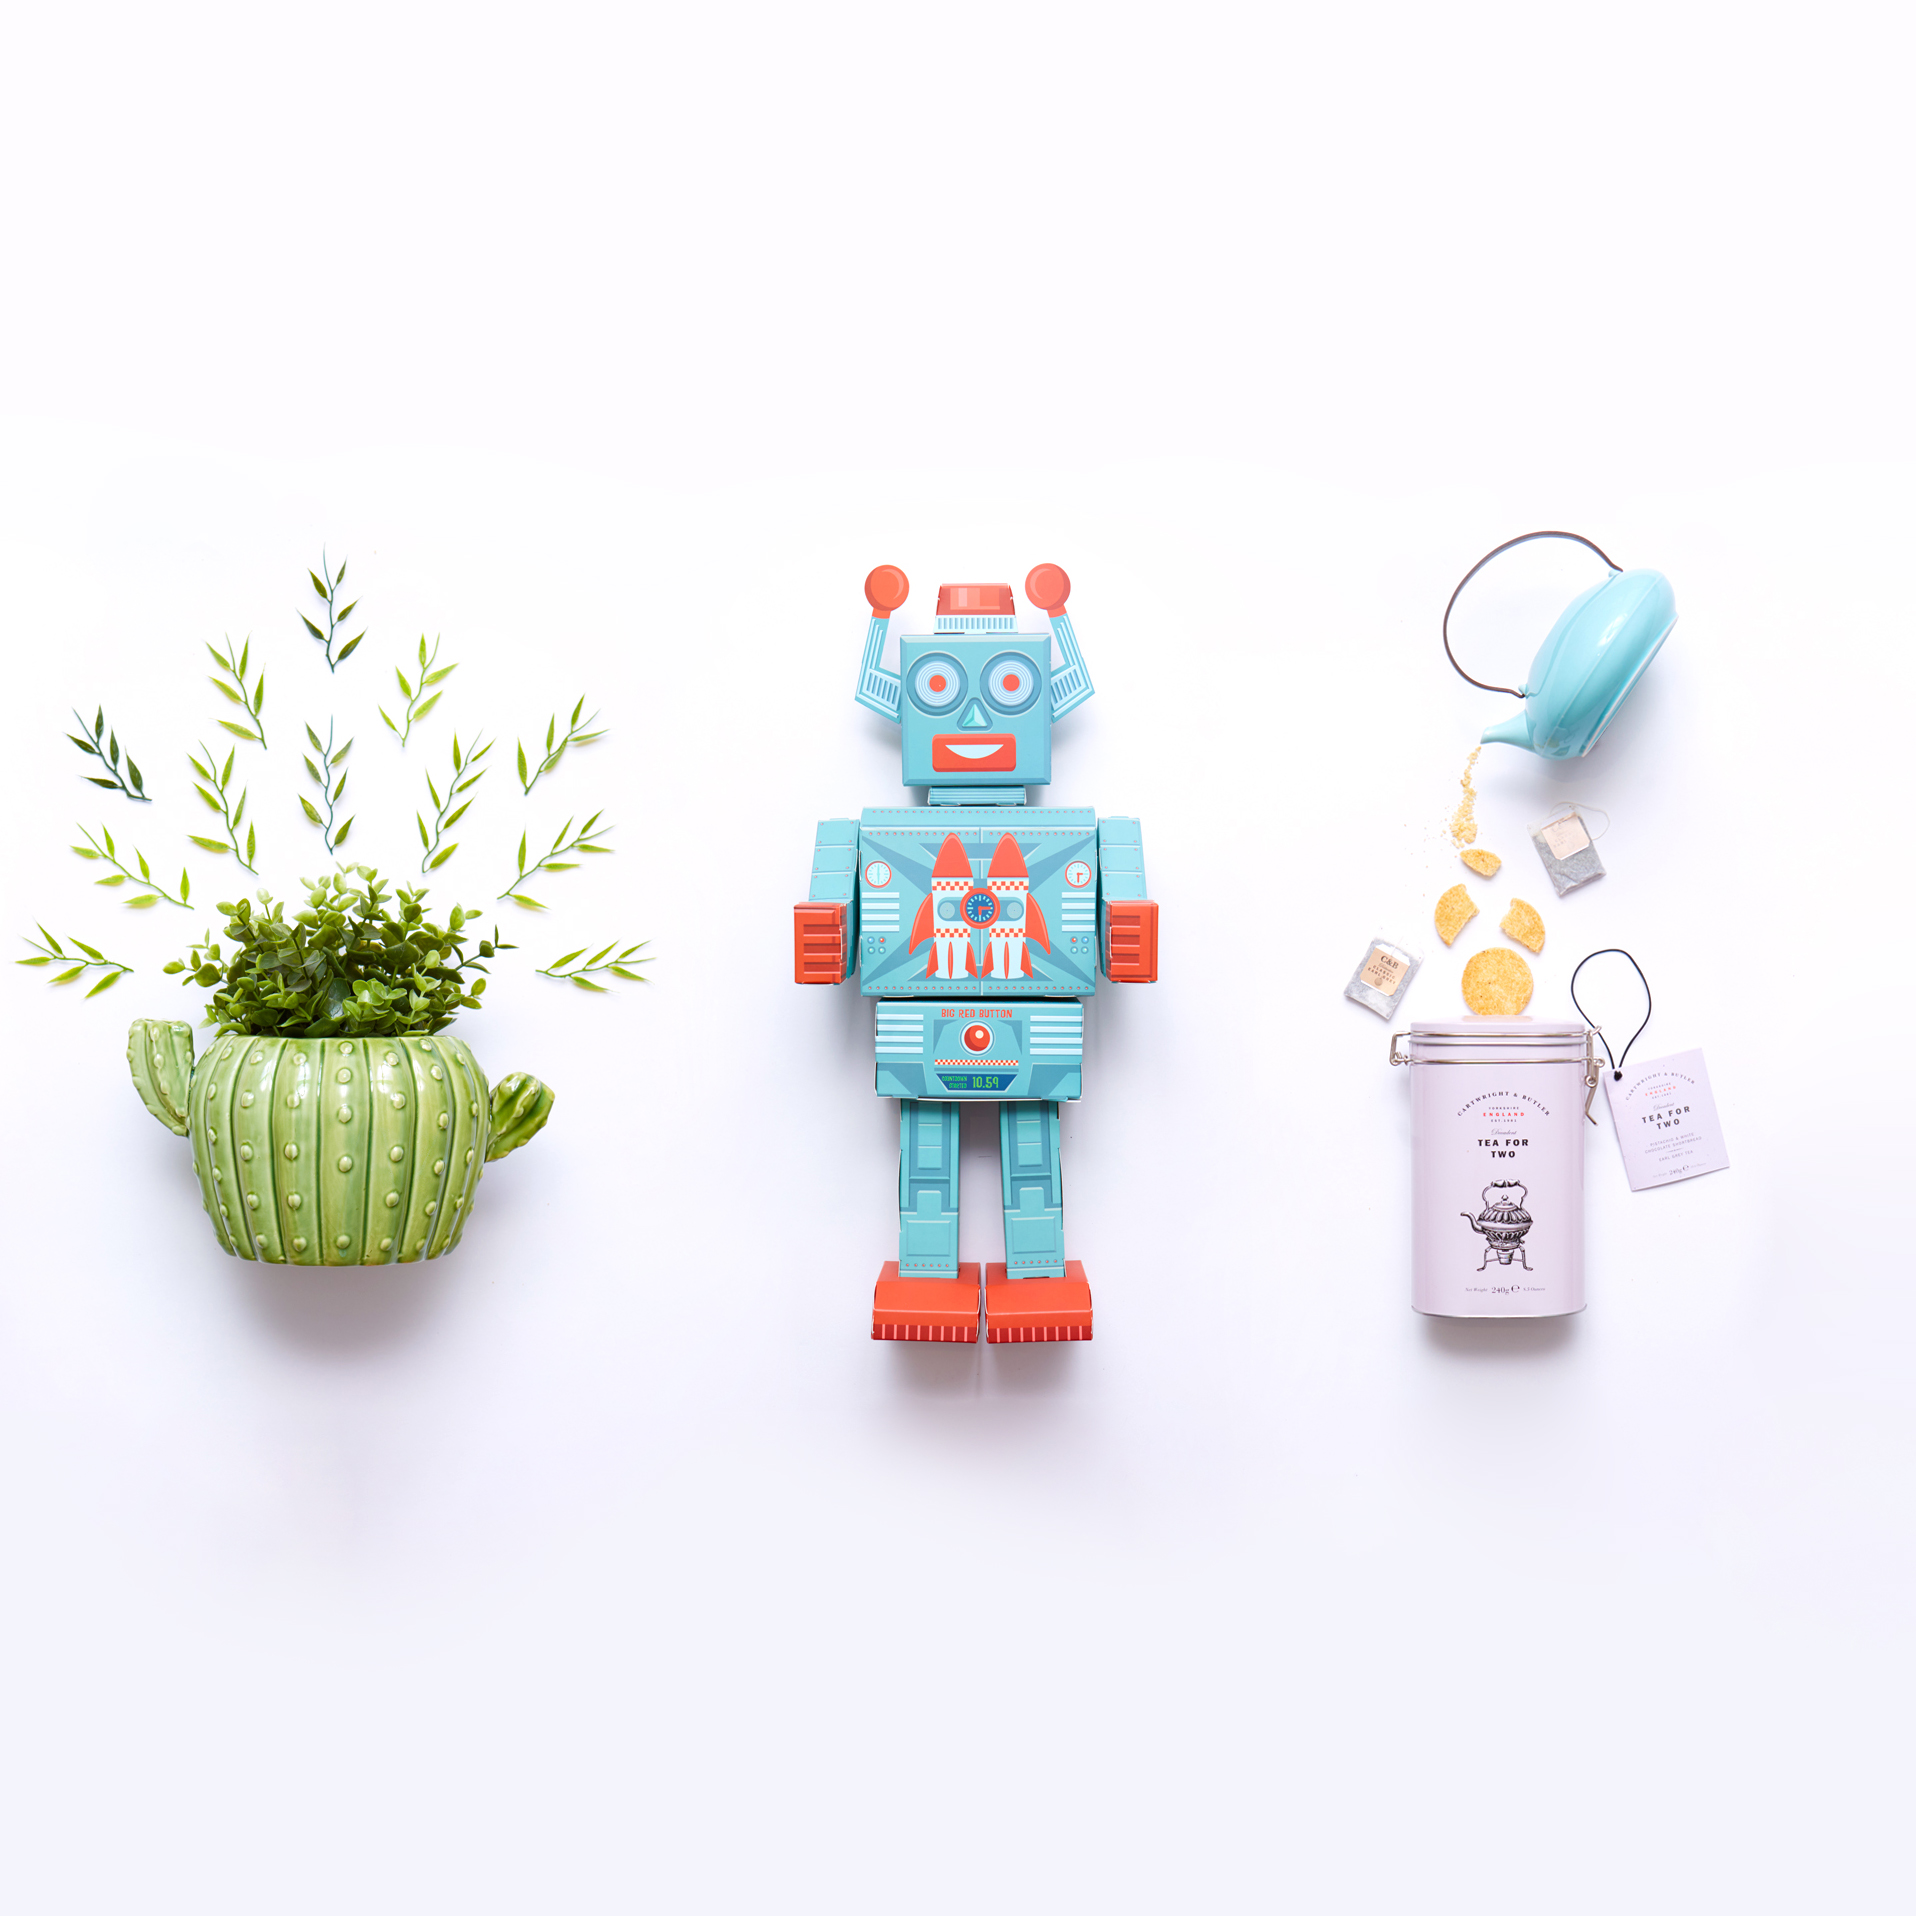 Top down shot of a cactus plant pot, a blue and red robot toy and a tin of biscuits.